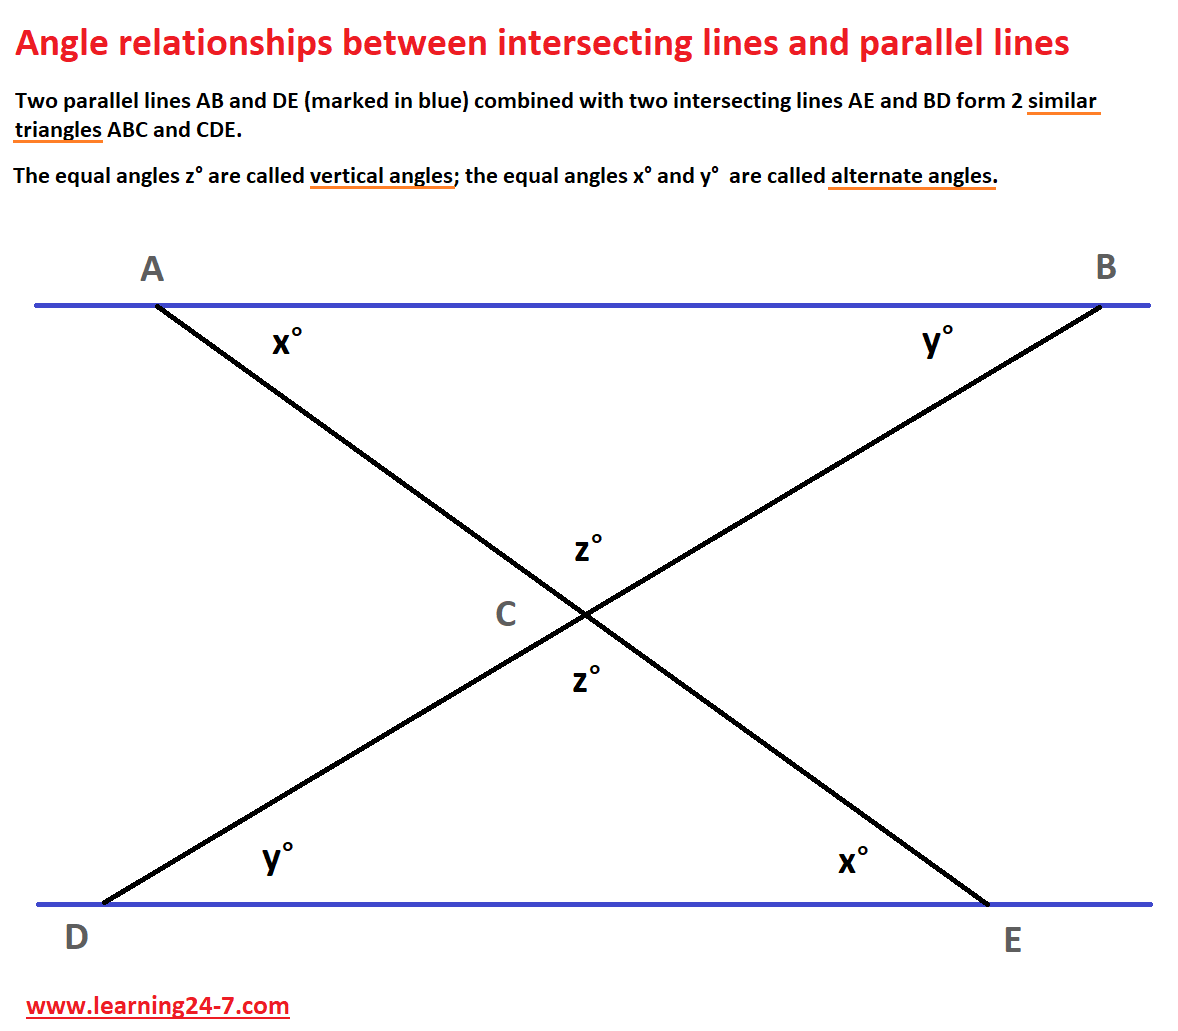 Angles between intersecting lines and parallel lines